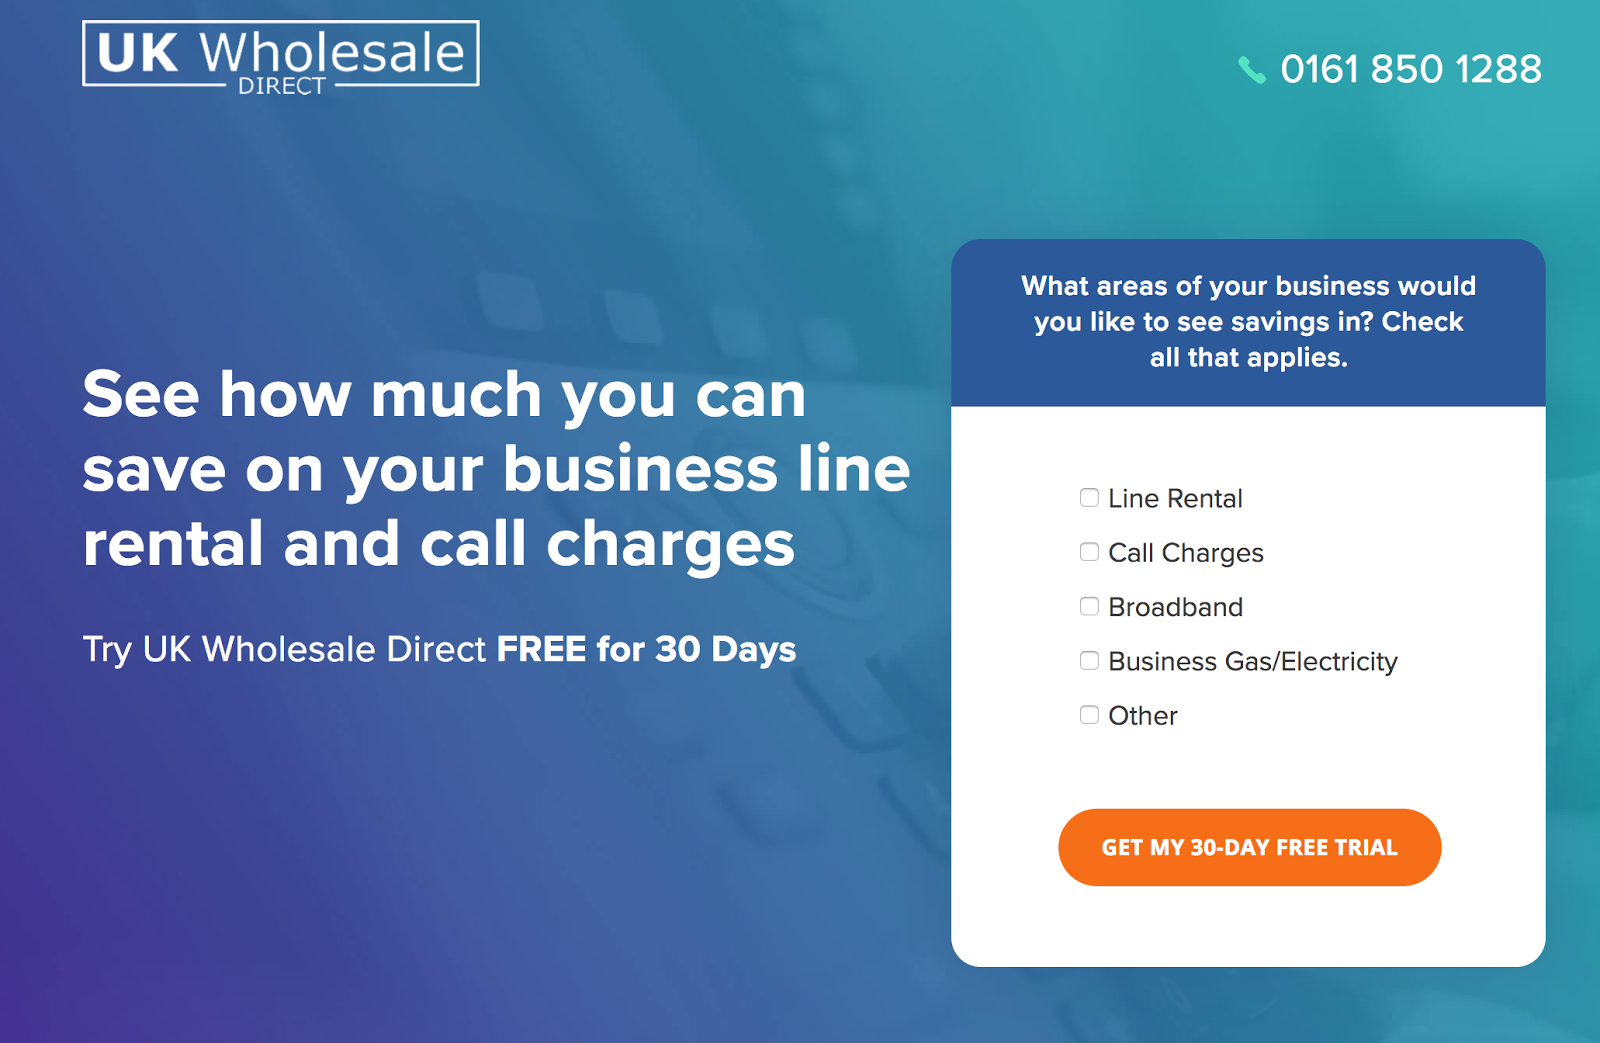 UK Wholesale has tracking on the number at the top of the screen.